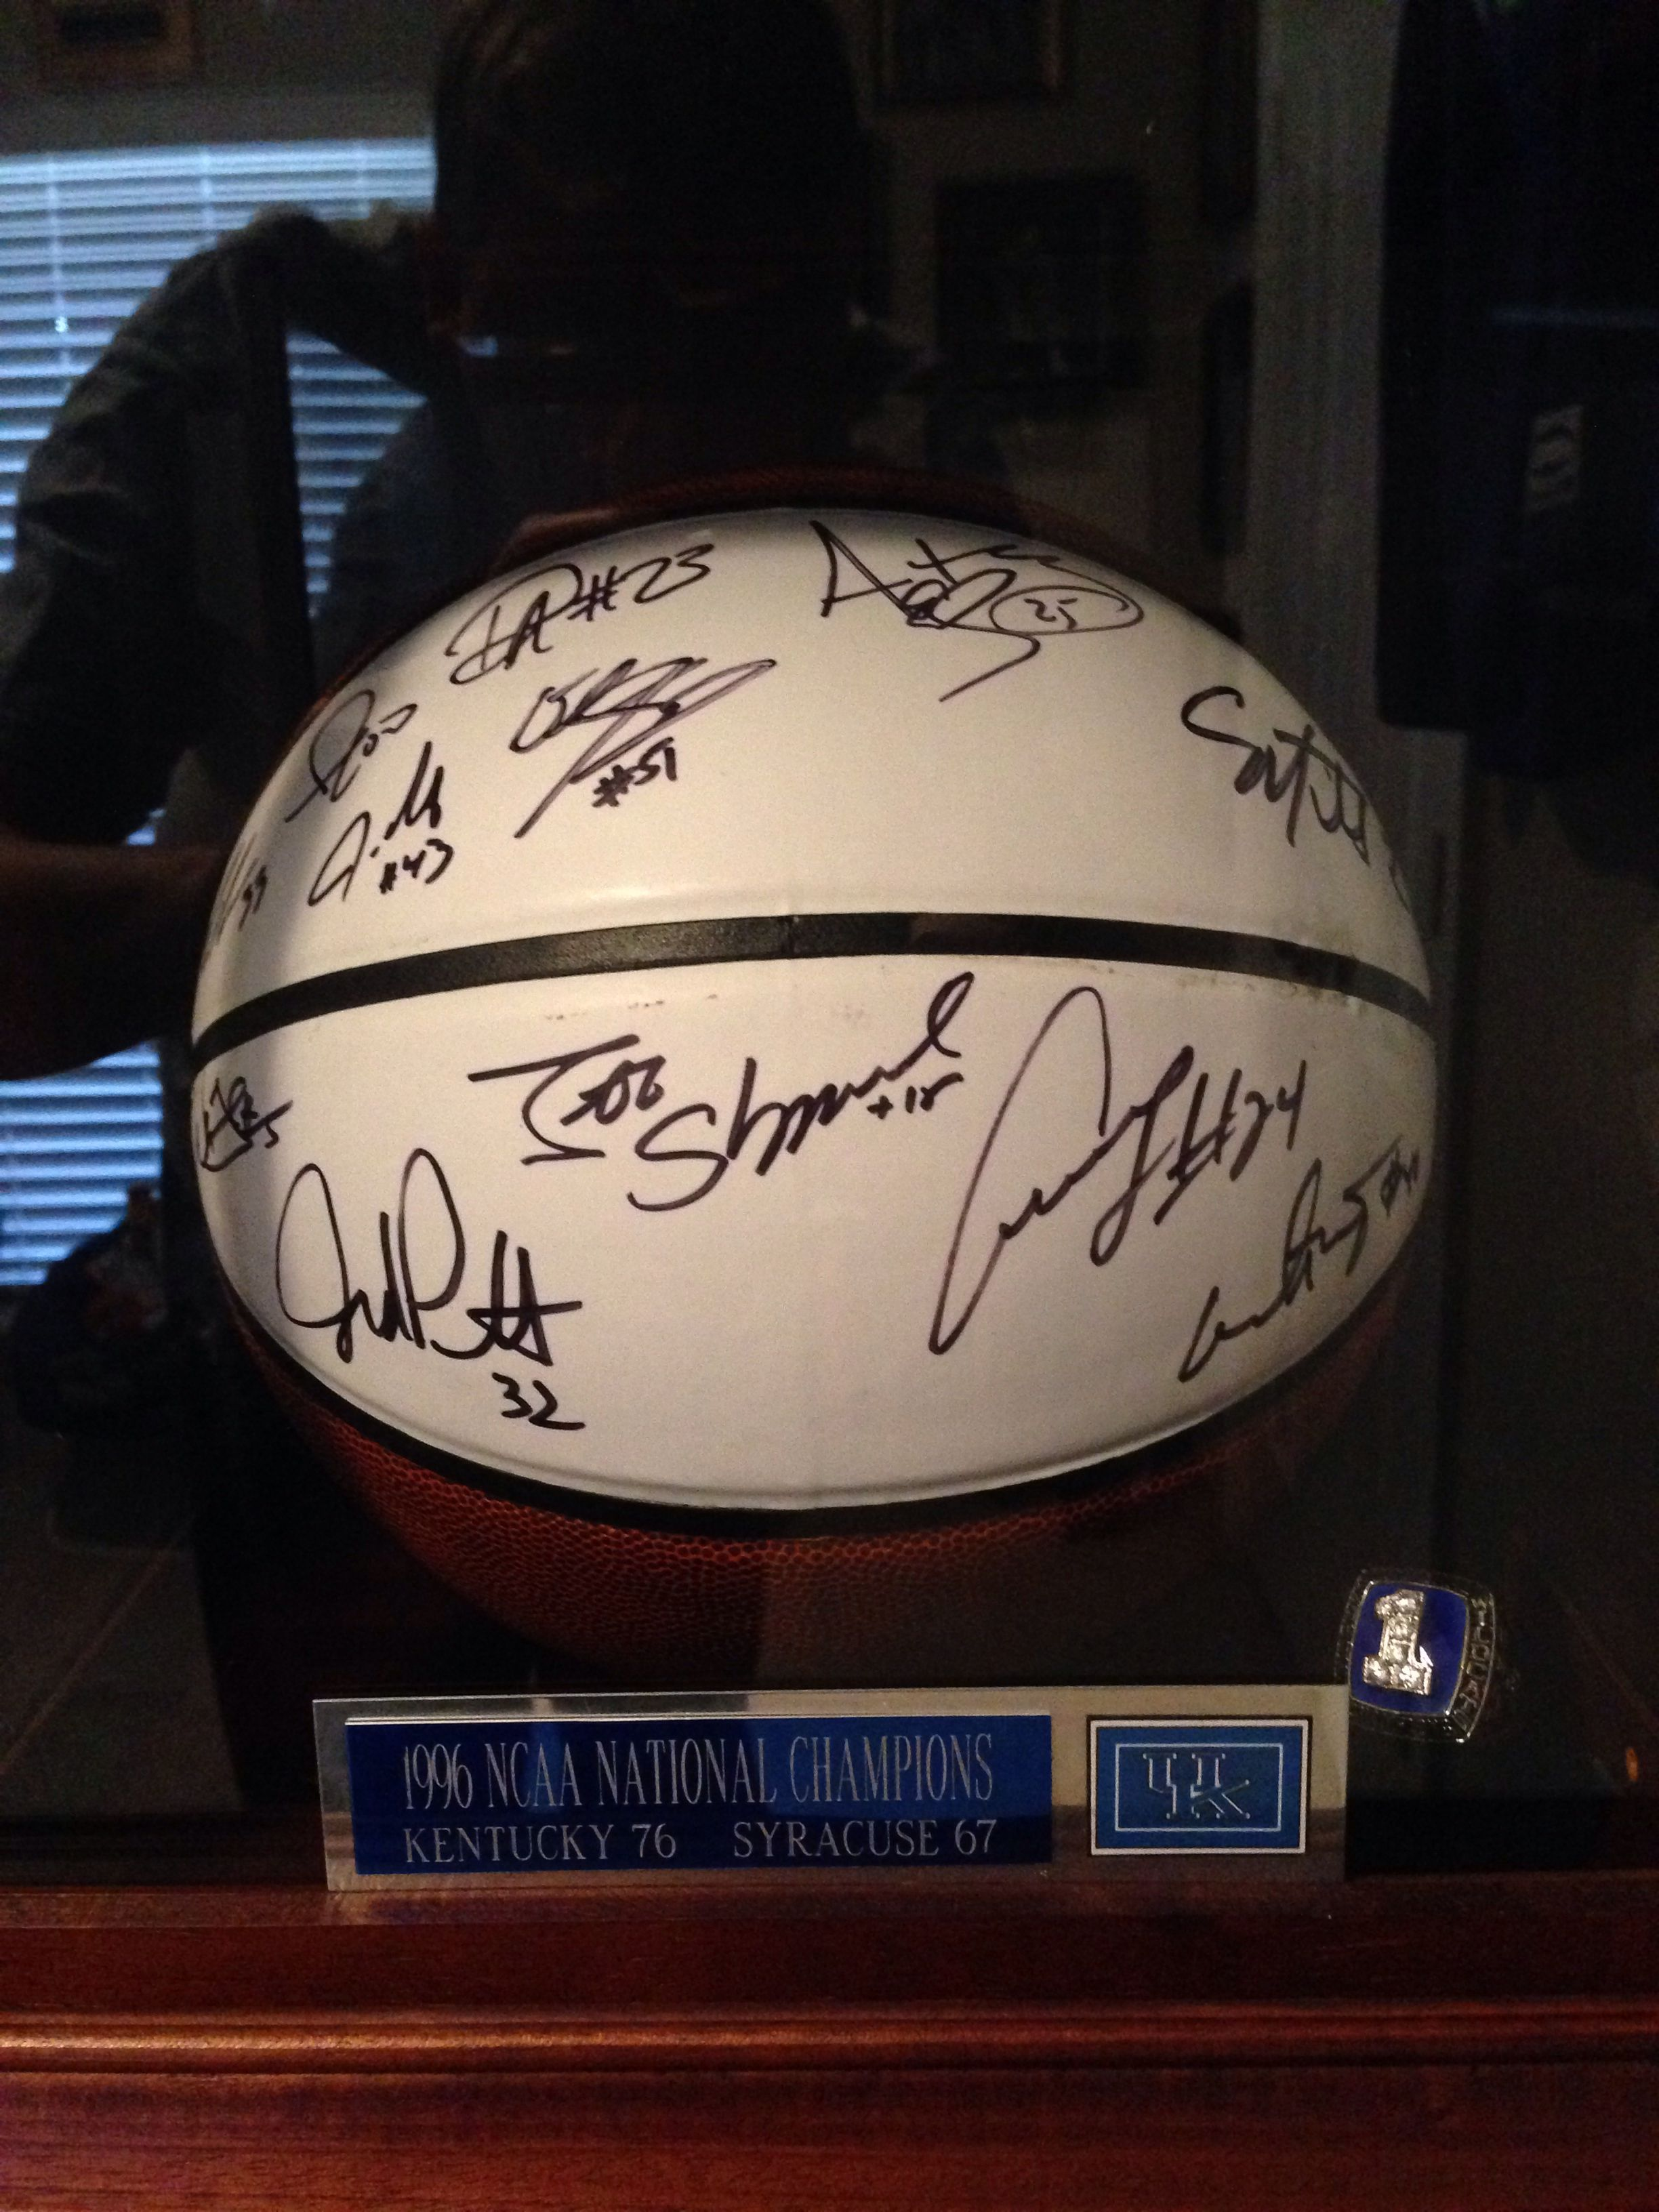 1996 National Championship Autographed team ball and ring